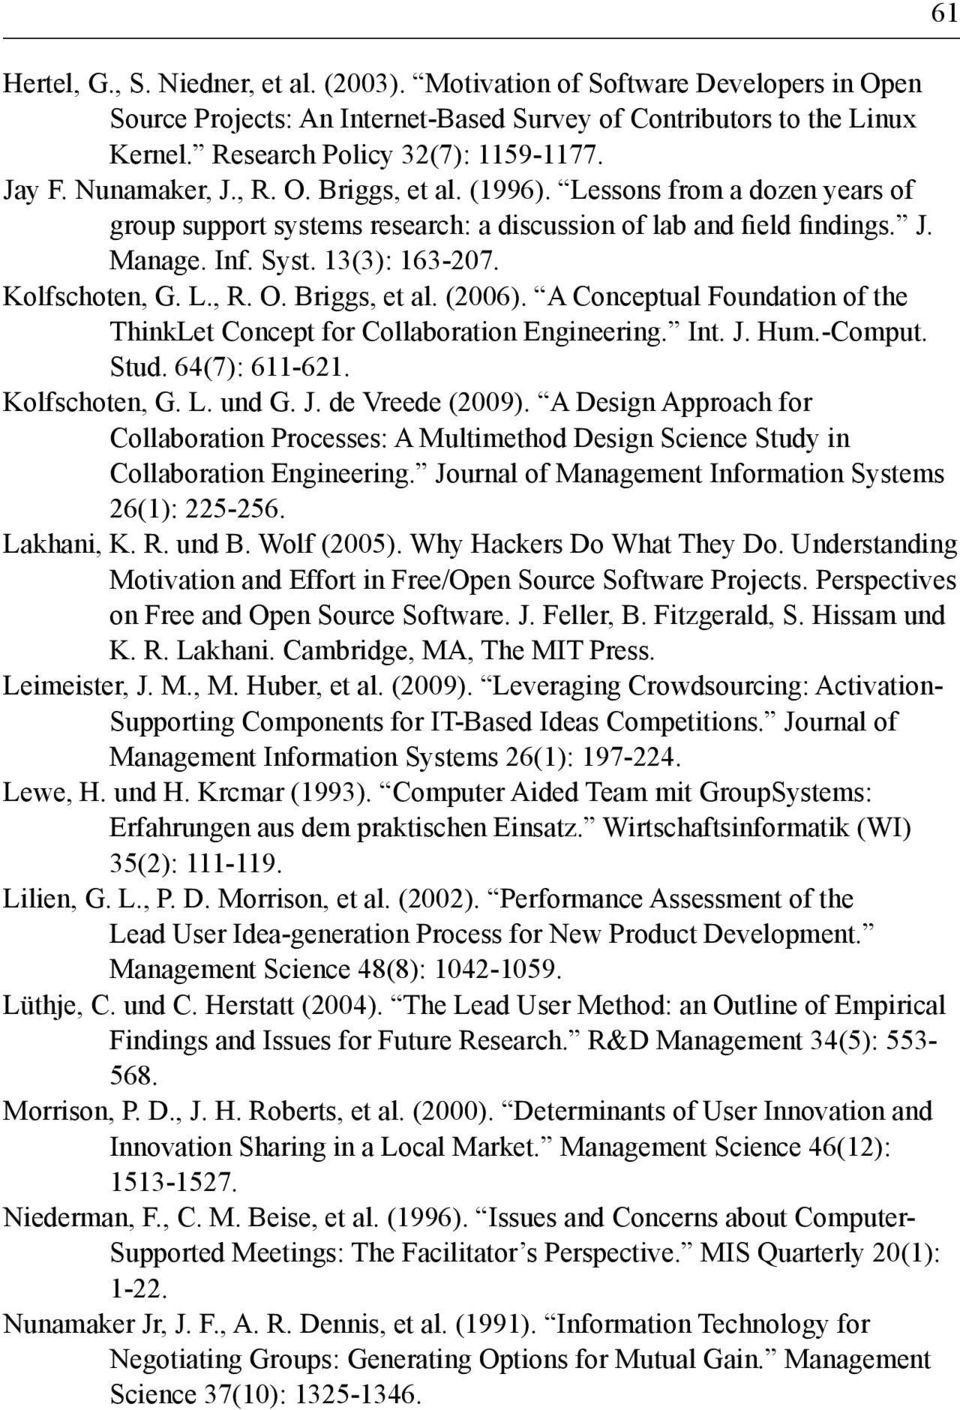 L., R. O. Briggs, et al. (2006). A Conceptual Foundation of the ThinkLet Concept for Collaboration Engineering. Int. J. Hum.-Comput. Stud. 64(7): 611-621. Kolfschoten, G. L. und G. J. de Vreede (2009).